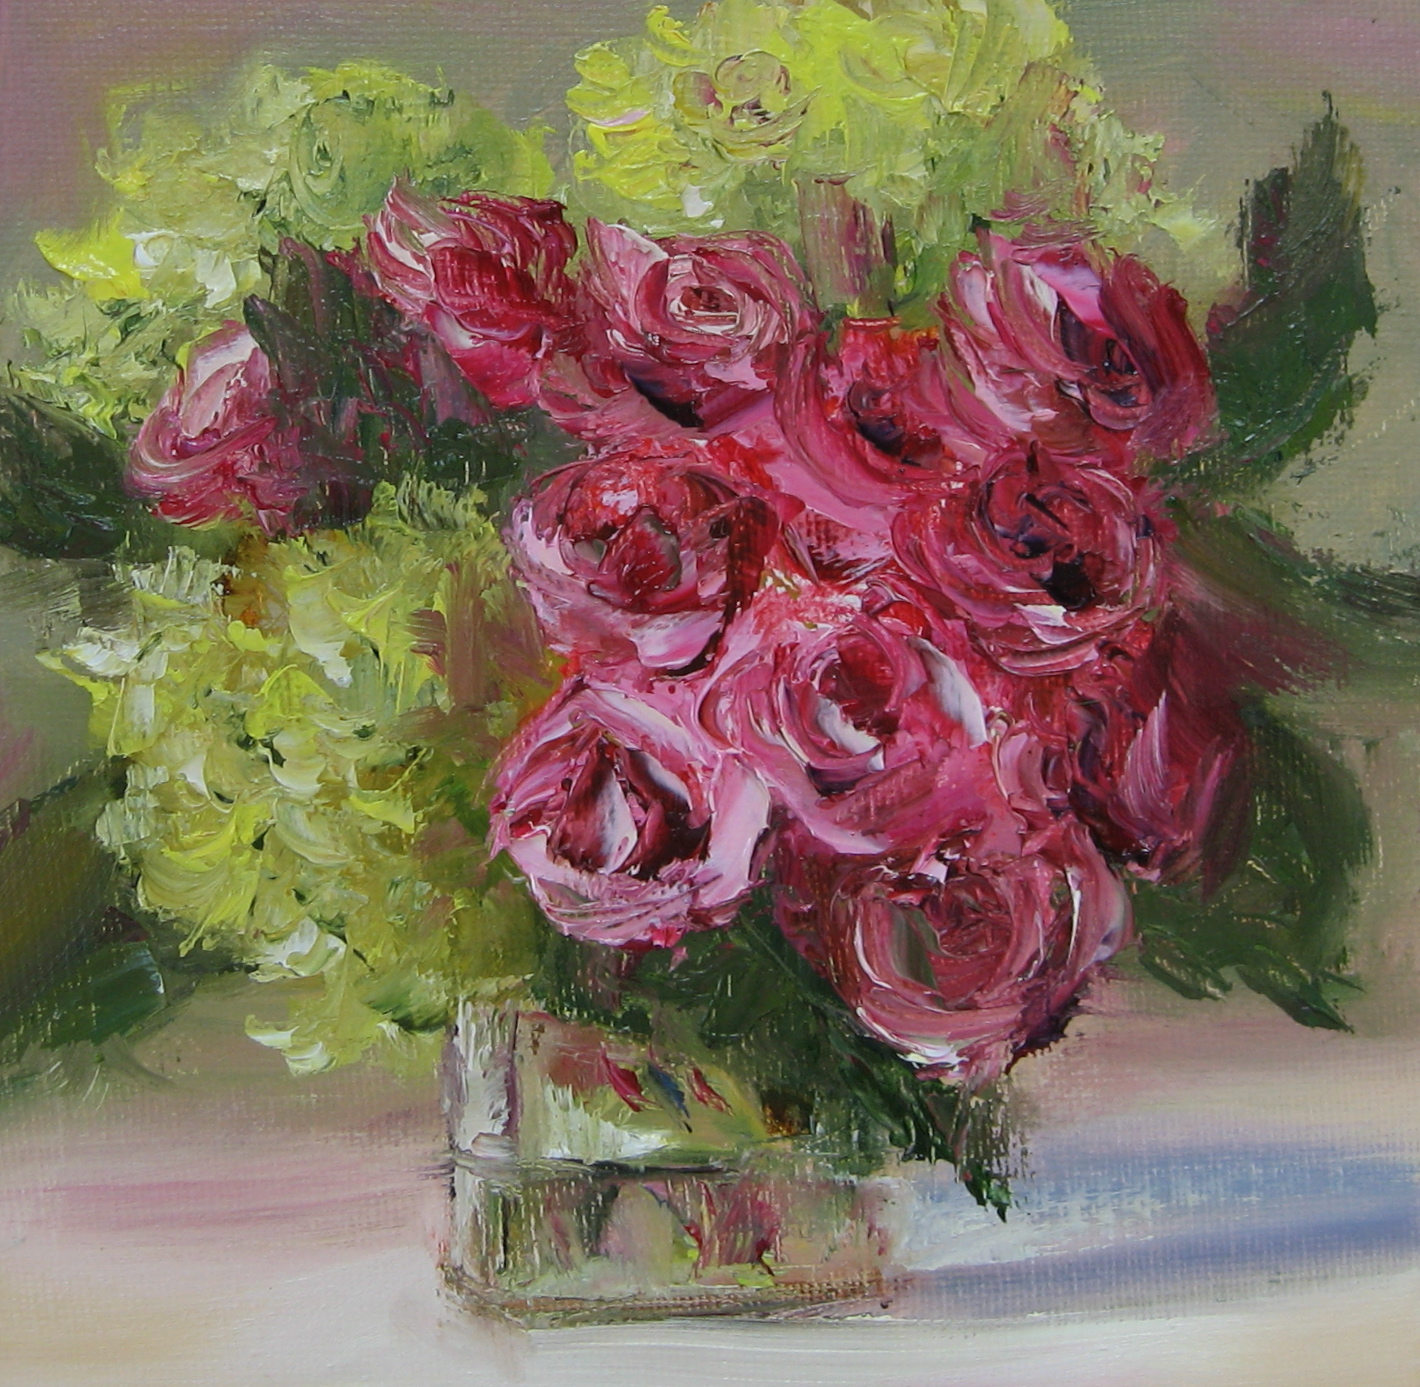 """Flower Study #34 Roses & Hydrangeas"" original fine art by Pat Fiorello"